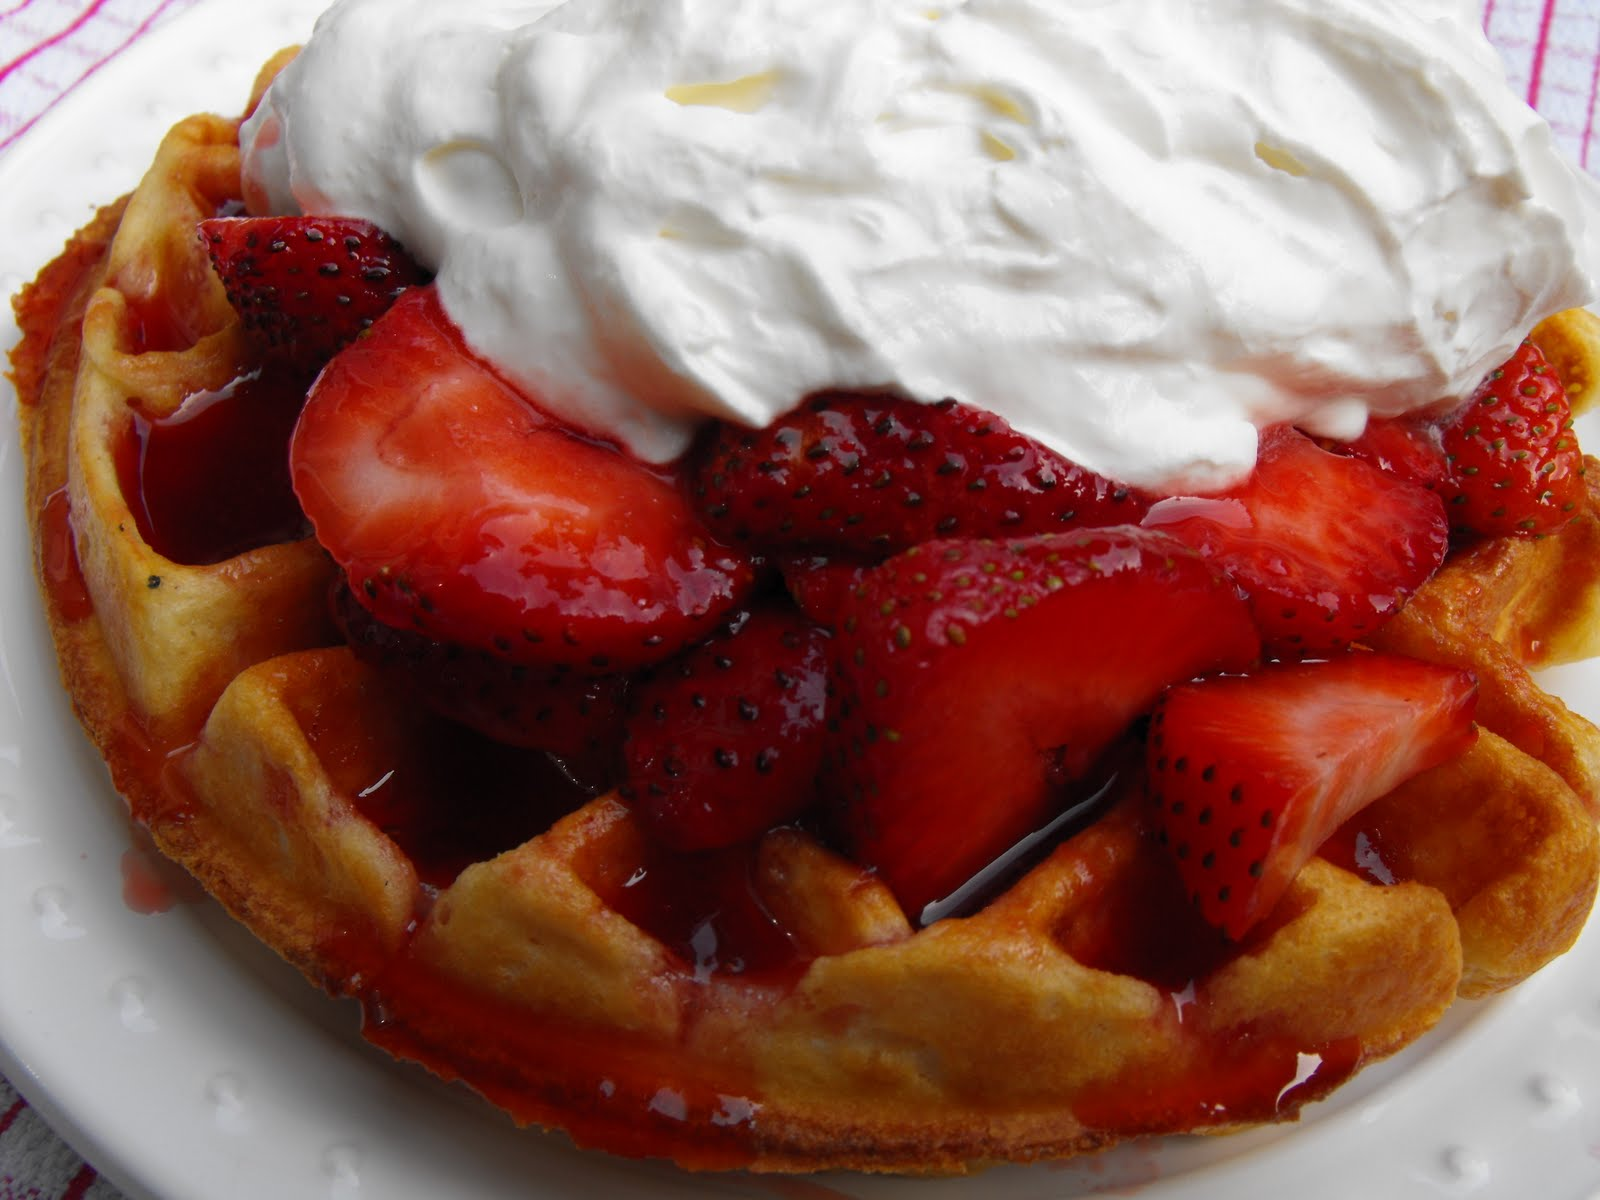 Belgian Waffles with Strawberries and Whipped Cream